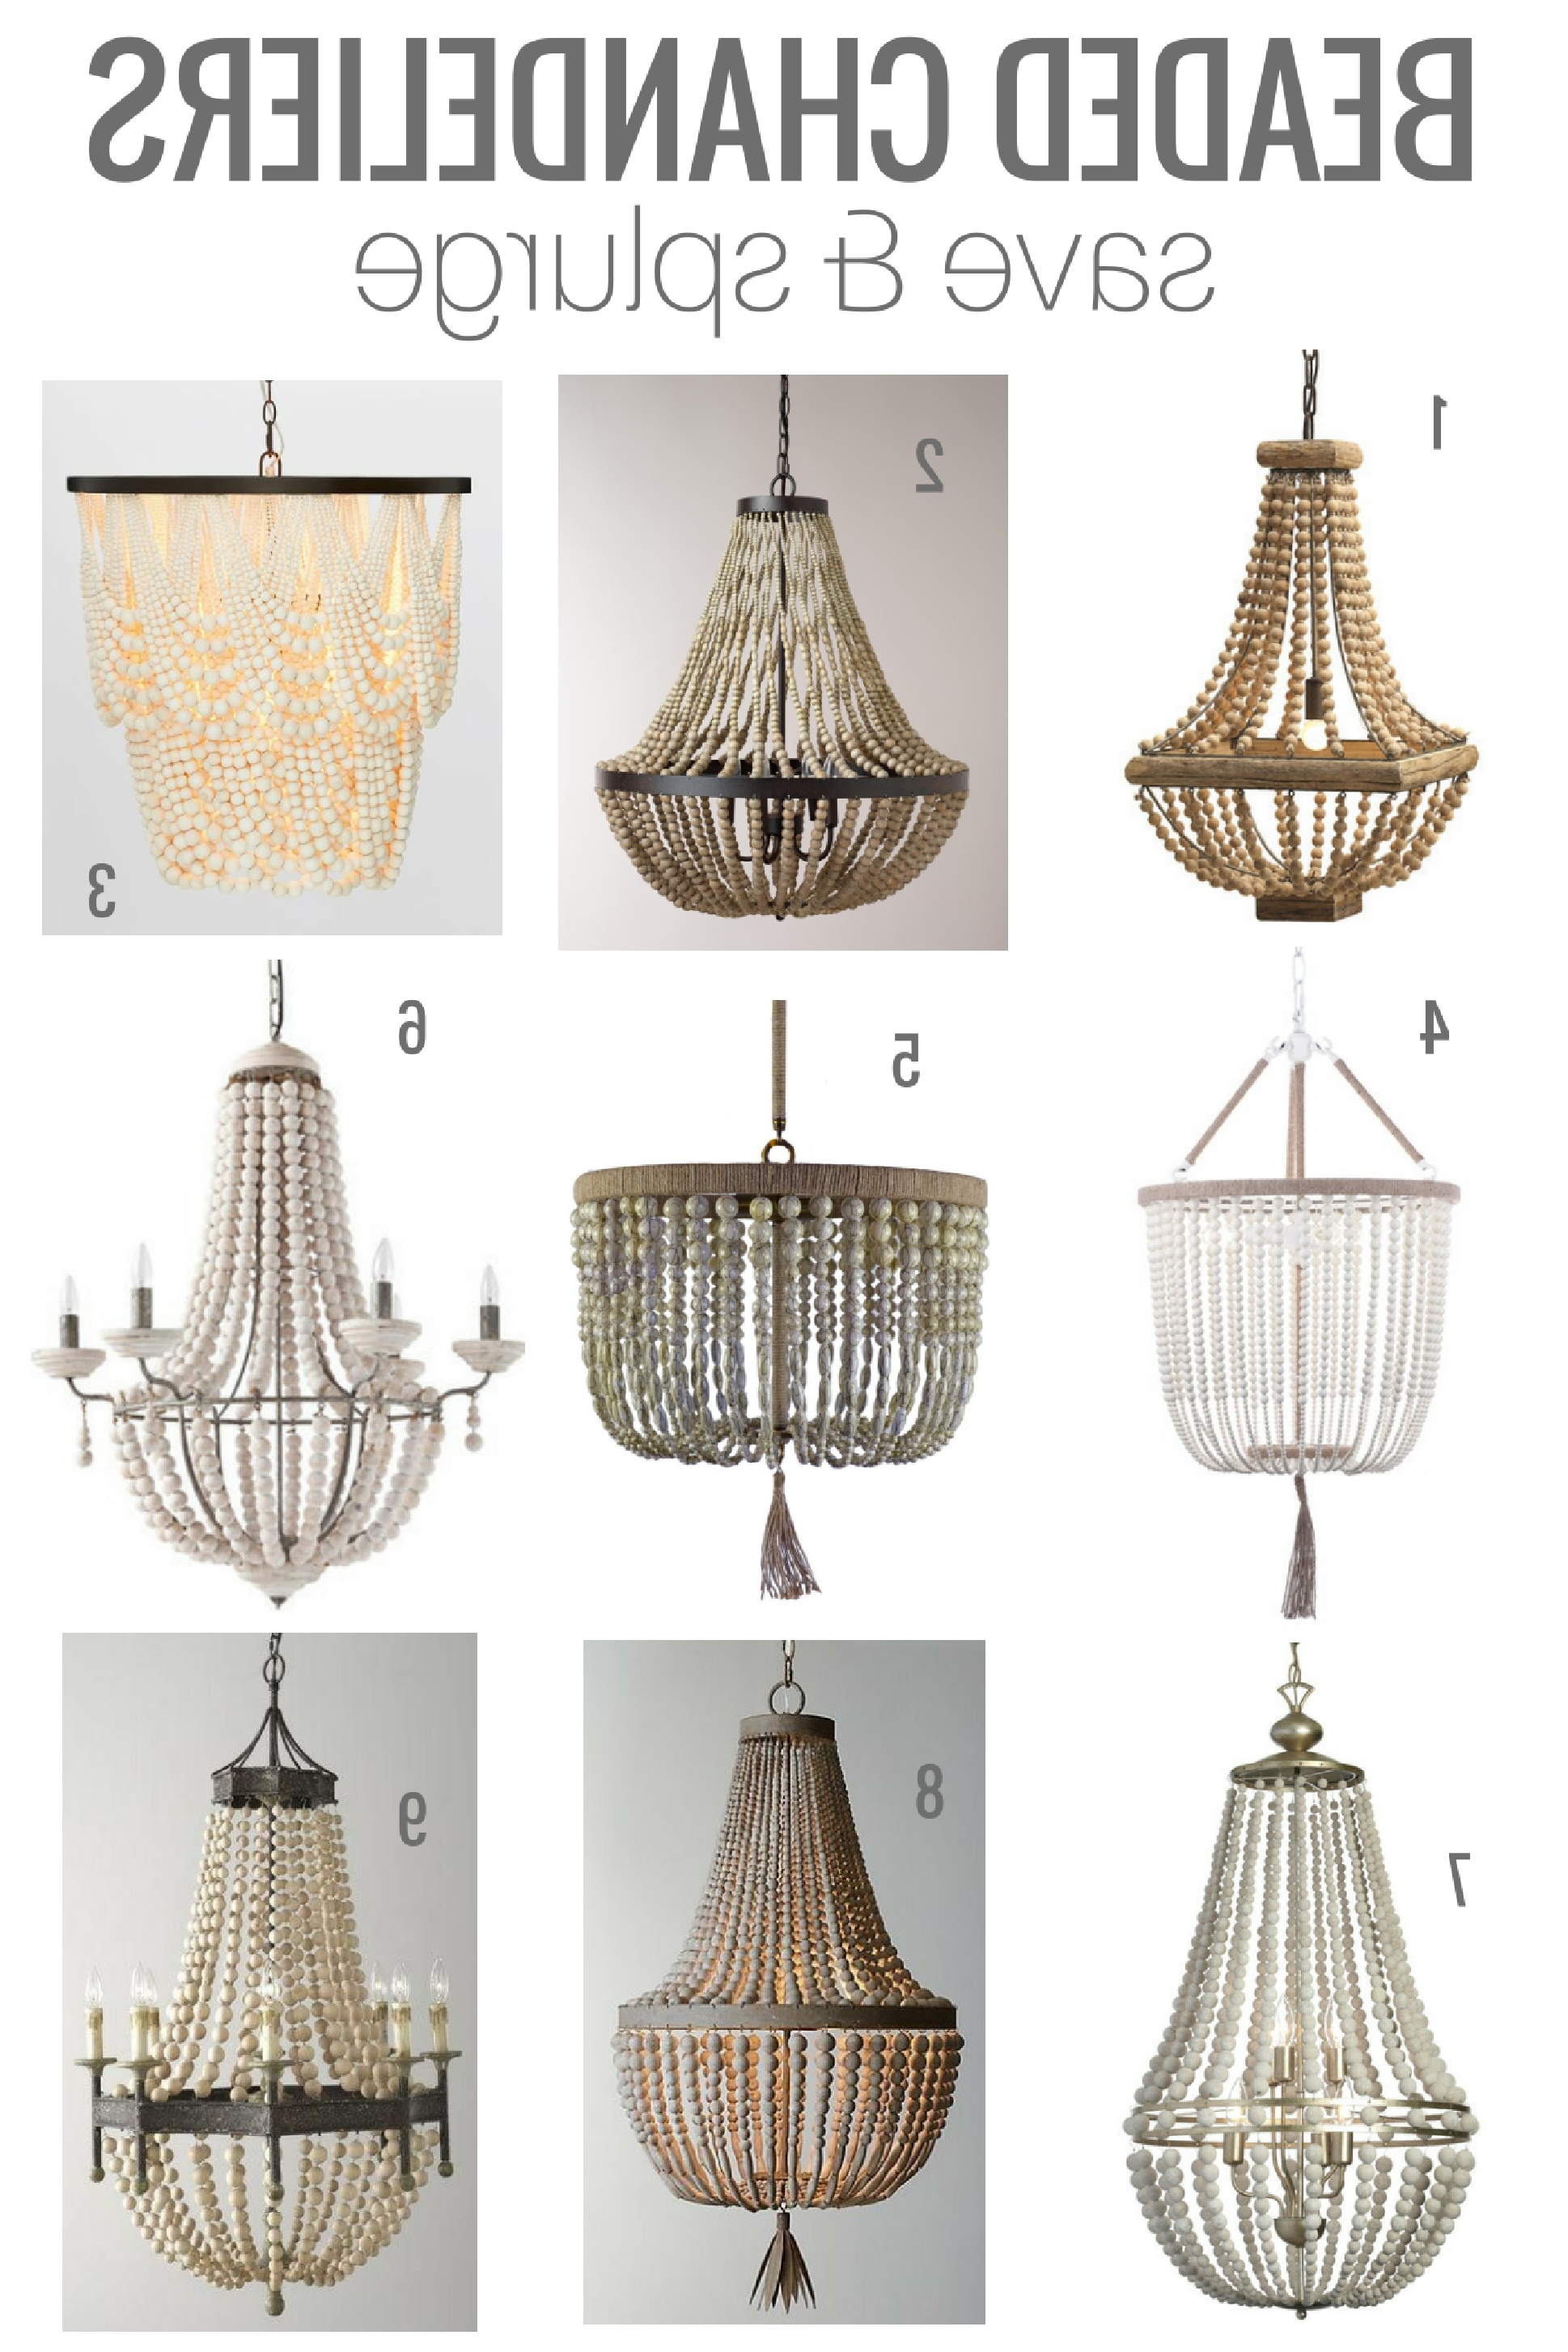 Widely Used Beaded Chandeliers & Invaluable Lighting Lessons (View 11 of 20)